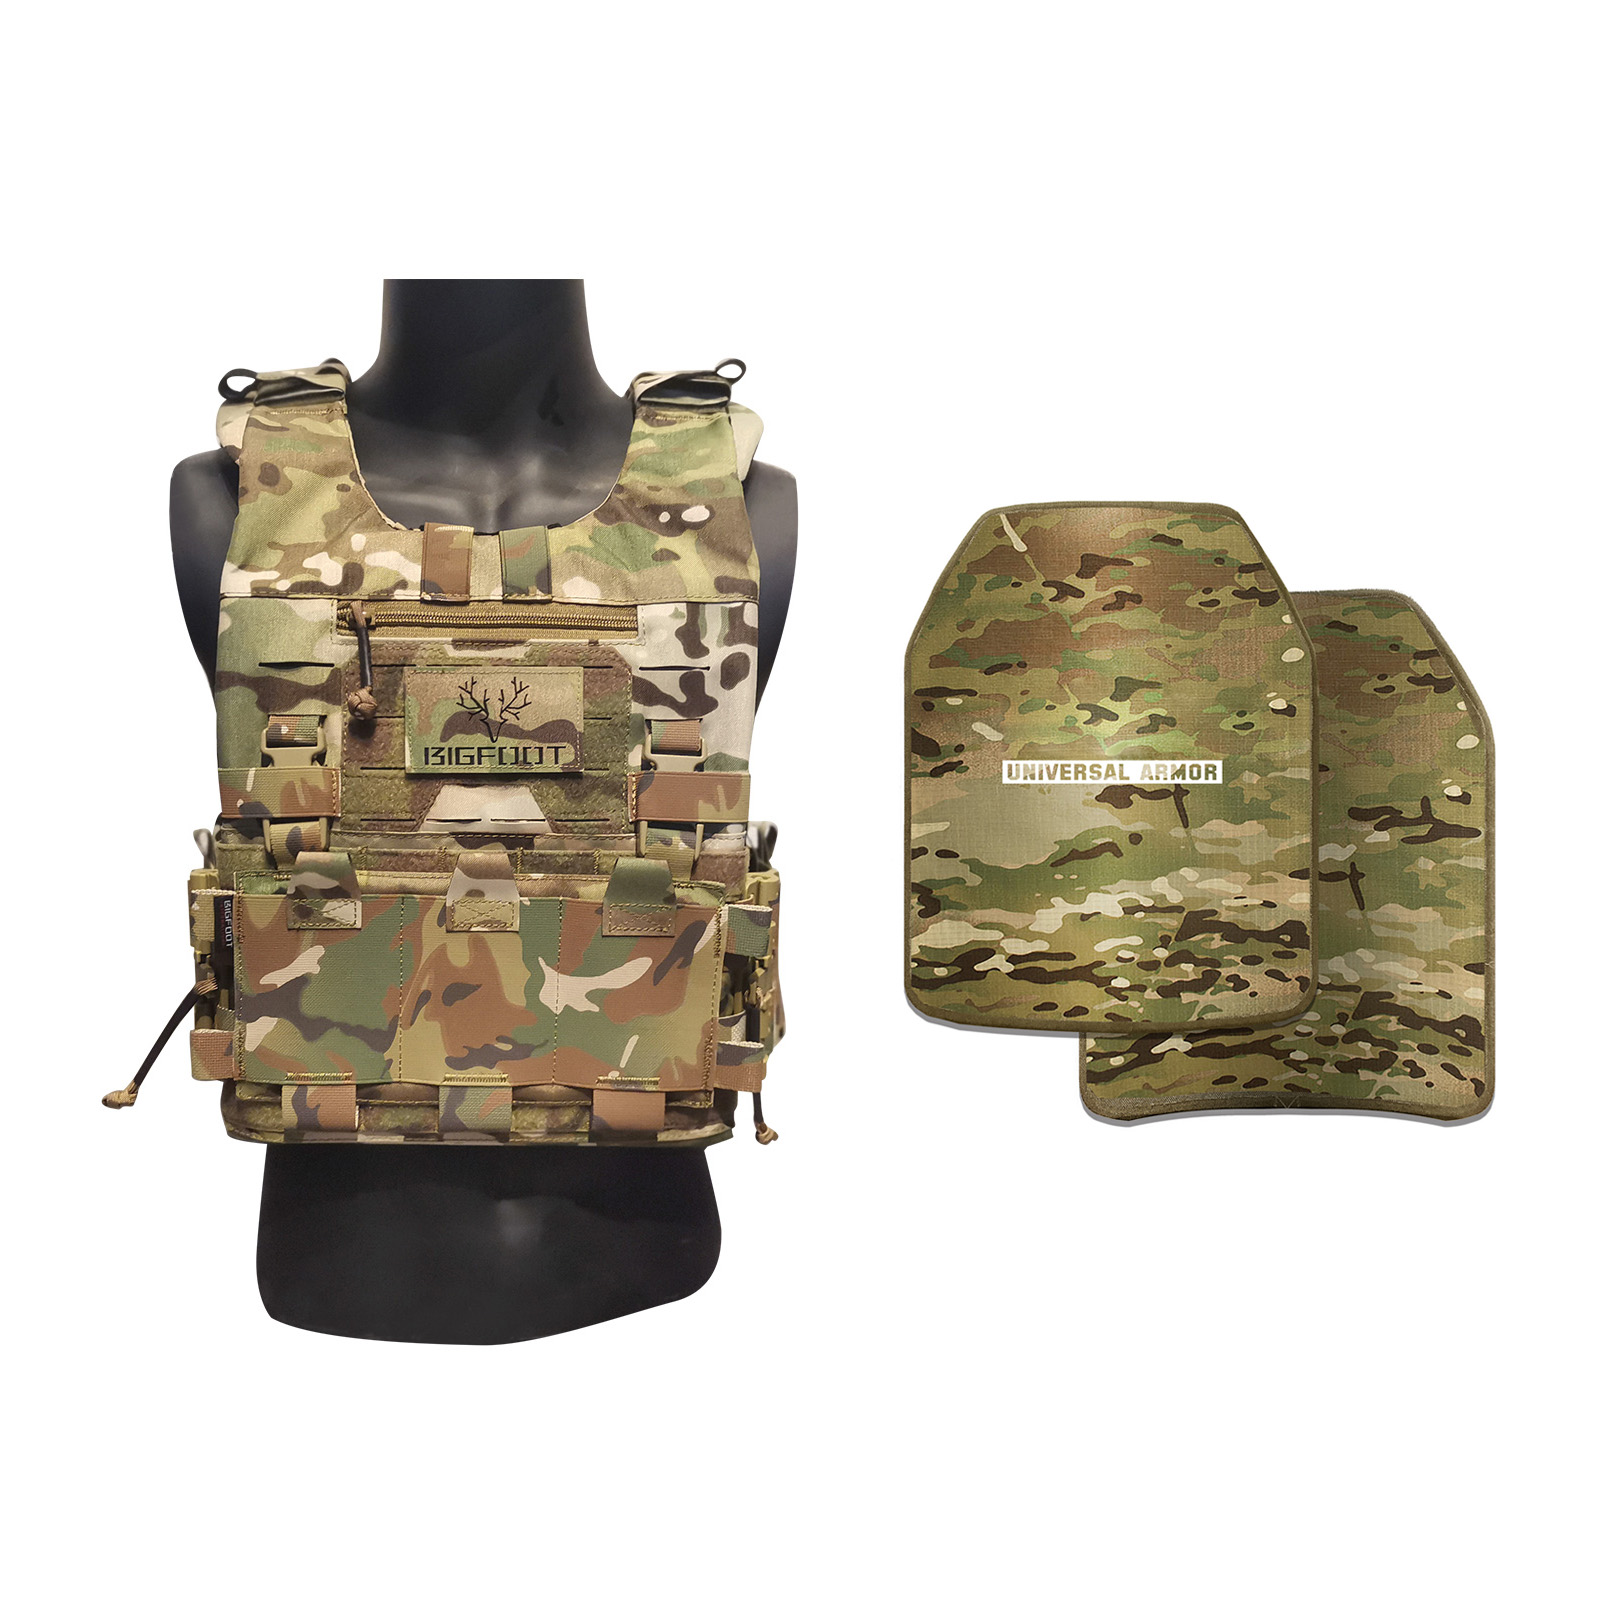 Bigfoot GTPC Lightweight Carrier and UTA NIJ Lever III  Armor Package